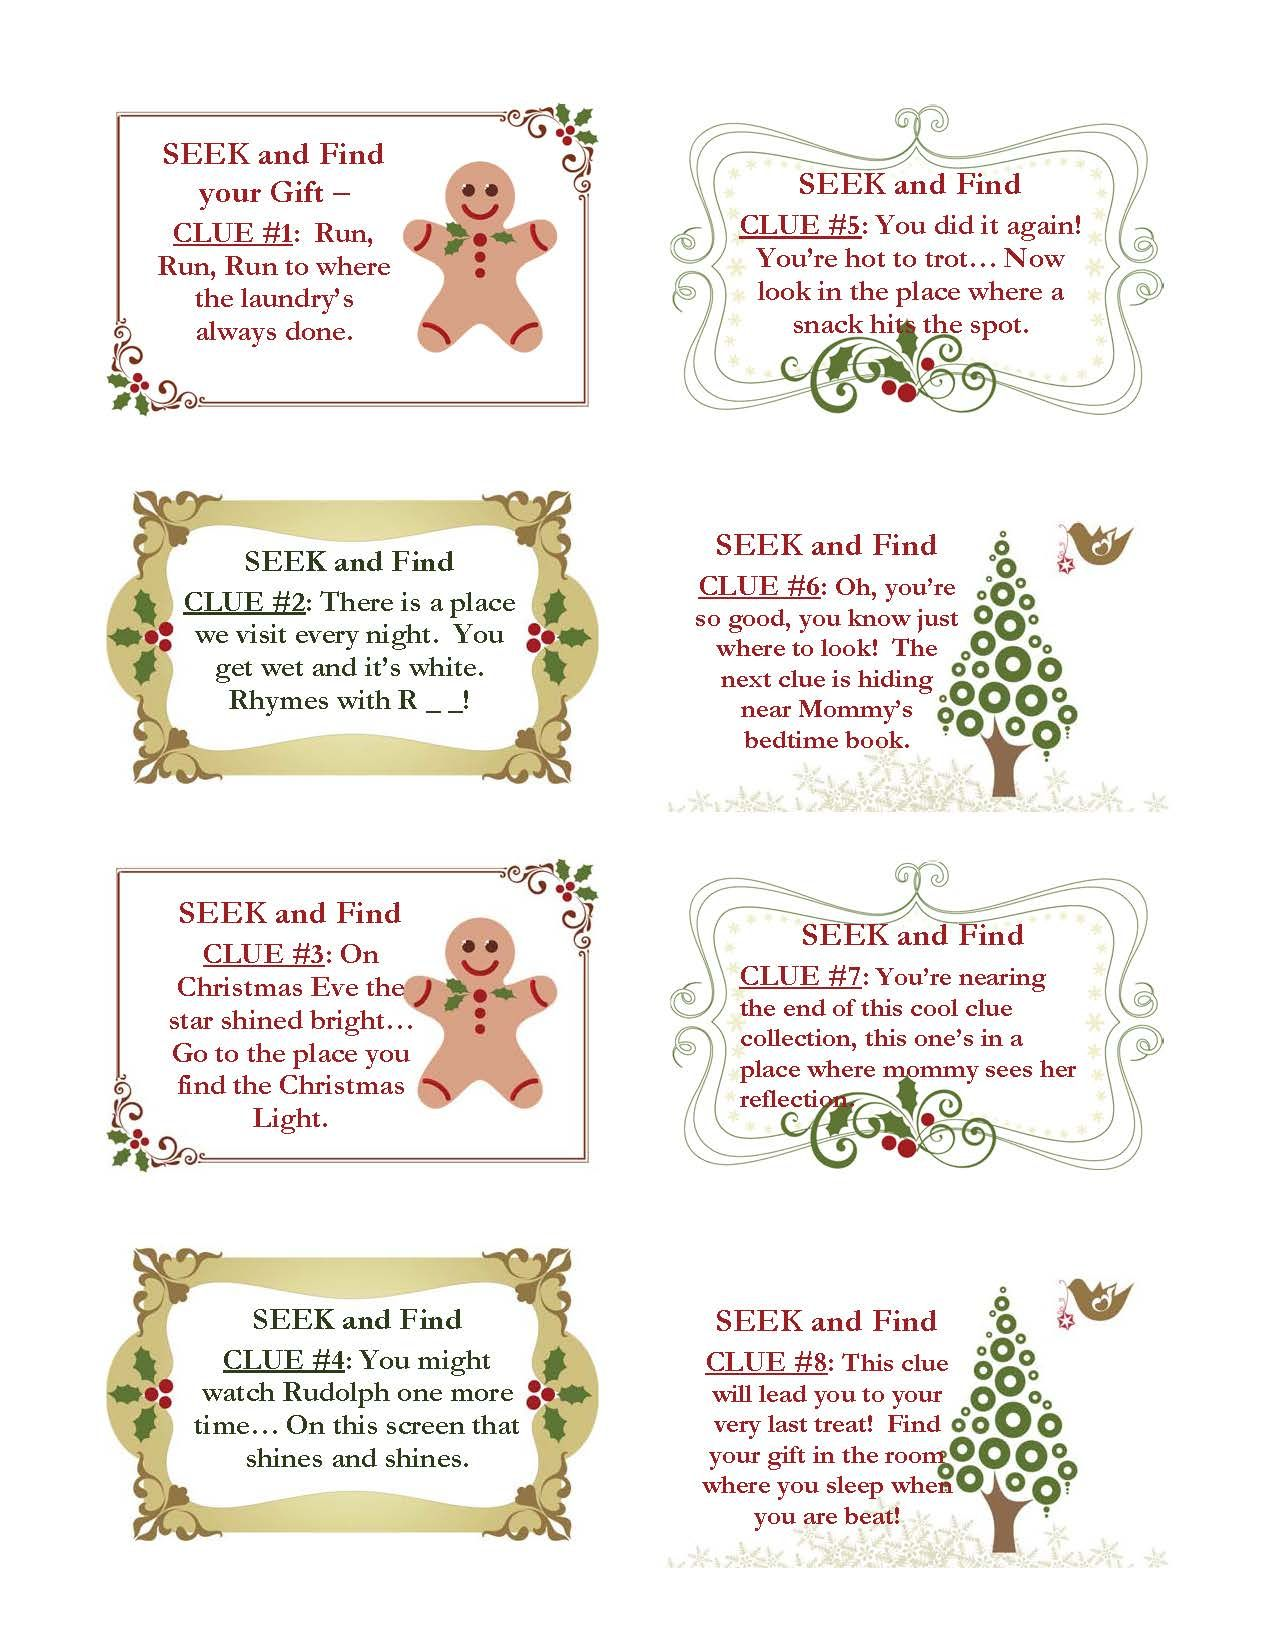 Christmas Scavenger Hunt Clues For The Younger One Some Good For Other Occasions